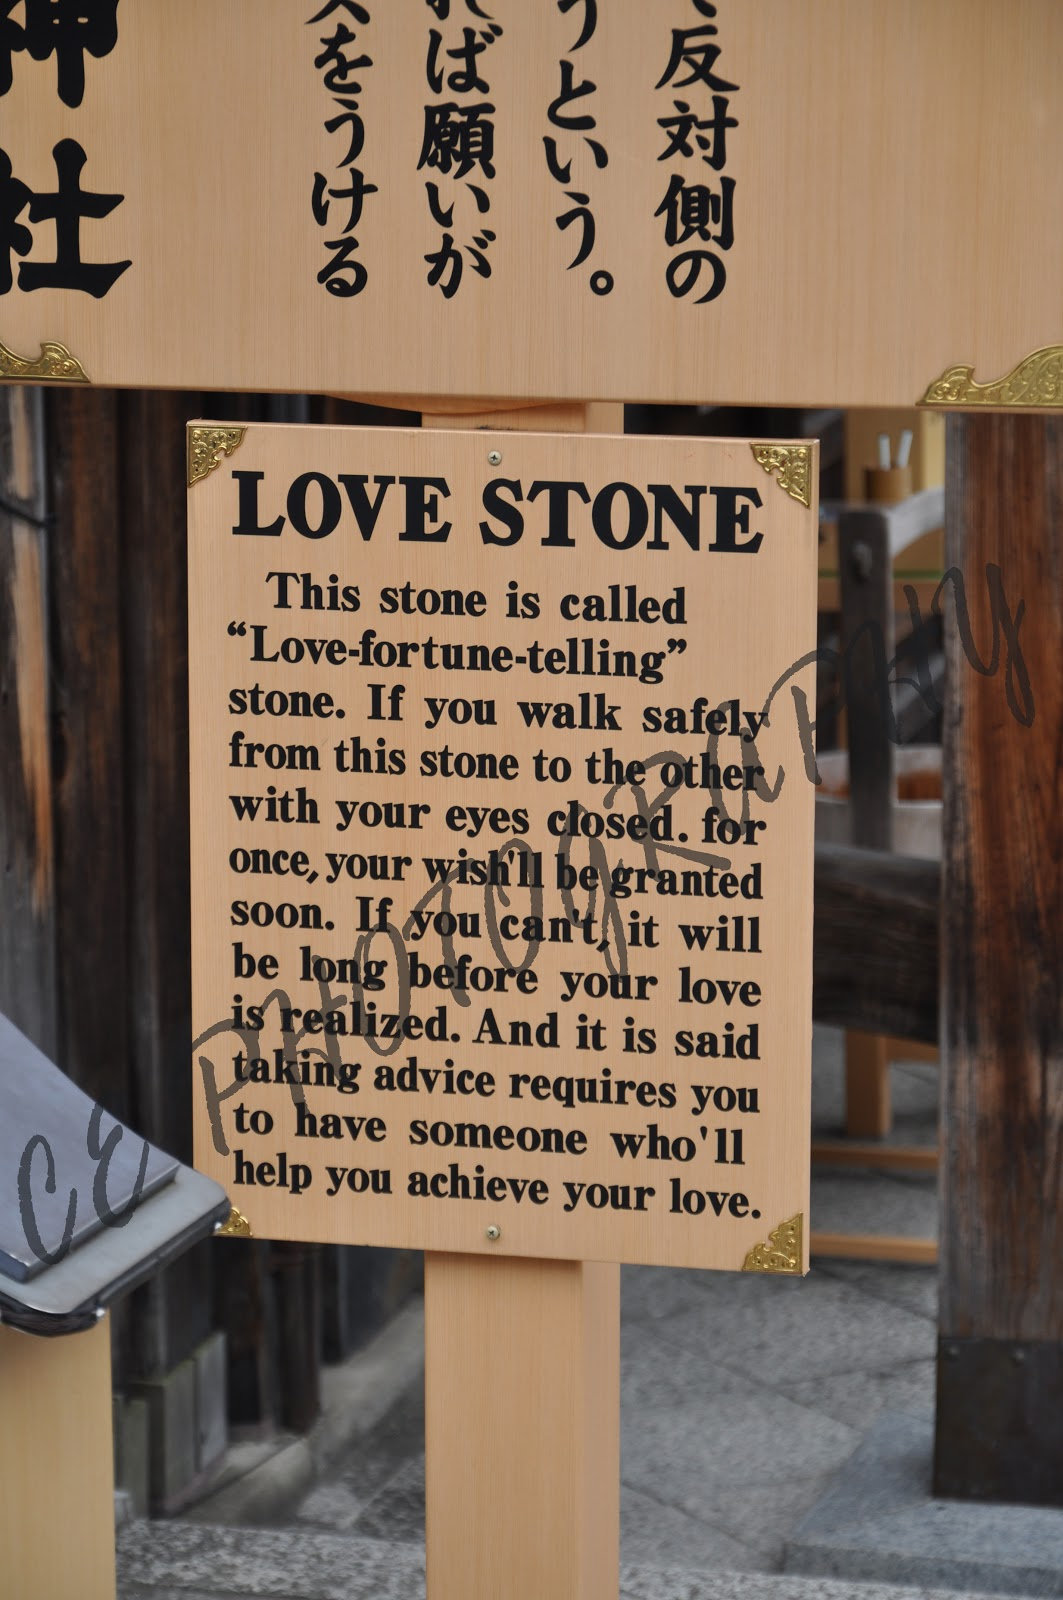 Love The Stone Tile For A Patio: Japan Learn: Love Stone